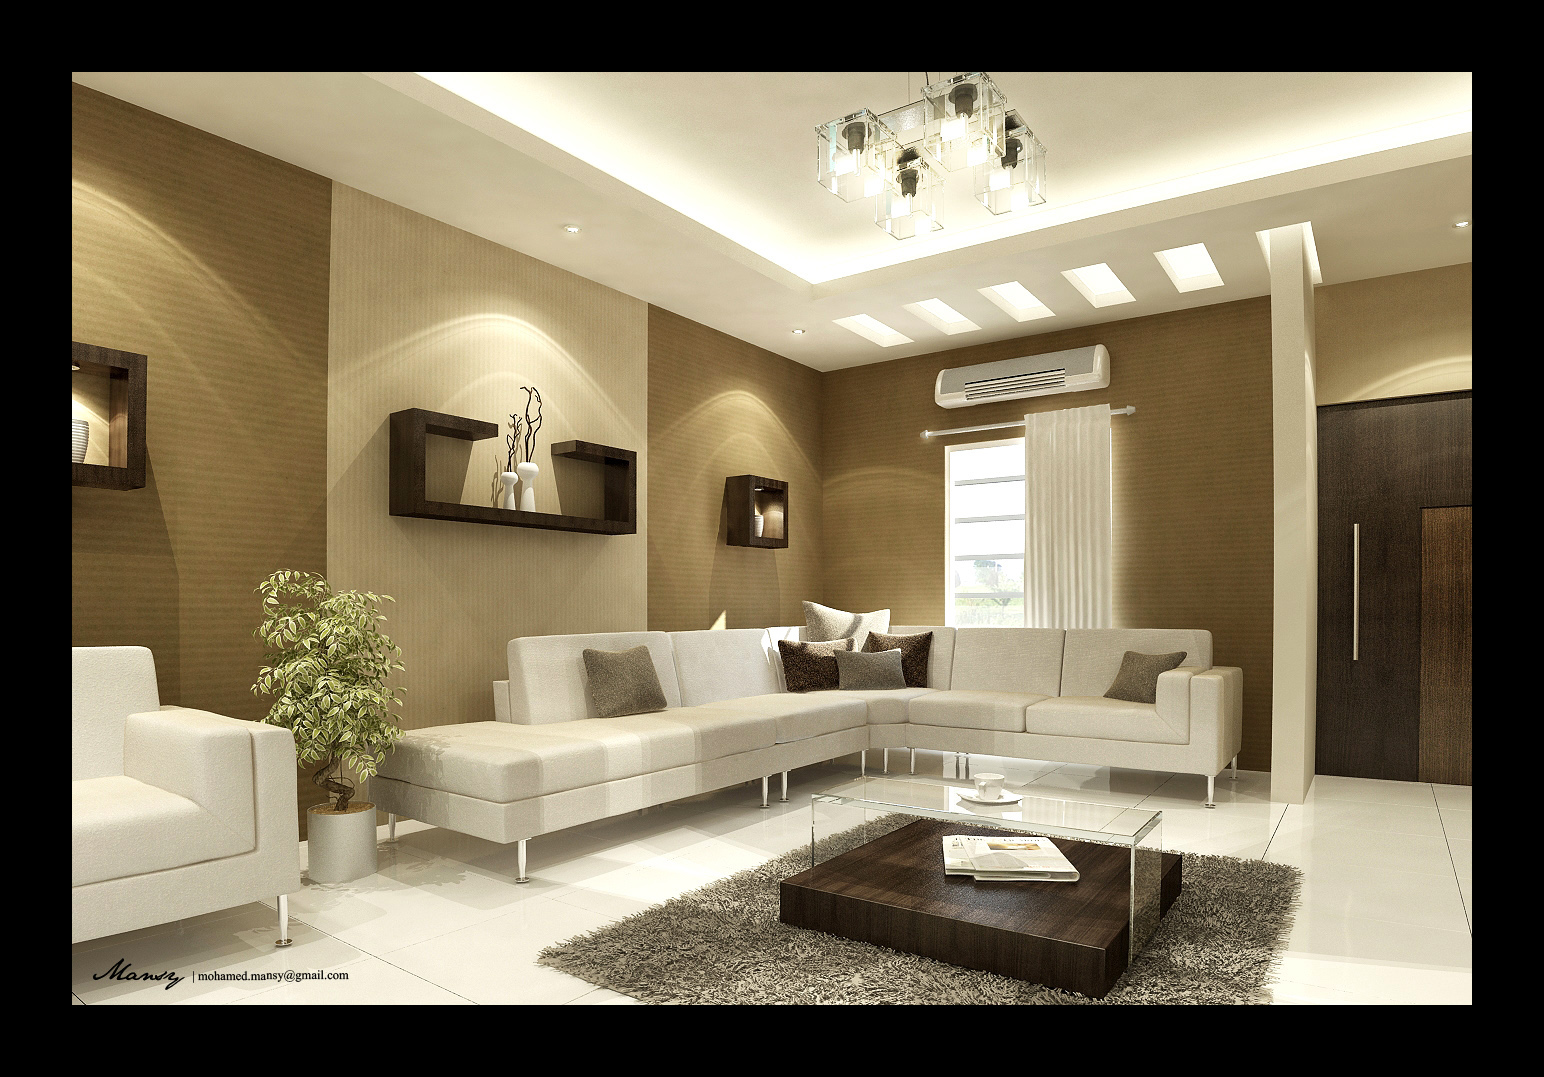 best interior designs for small living room utaibi house livingroom by mohamedmansy on deviantart 27875